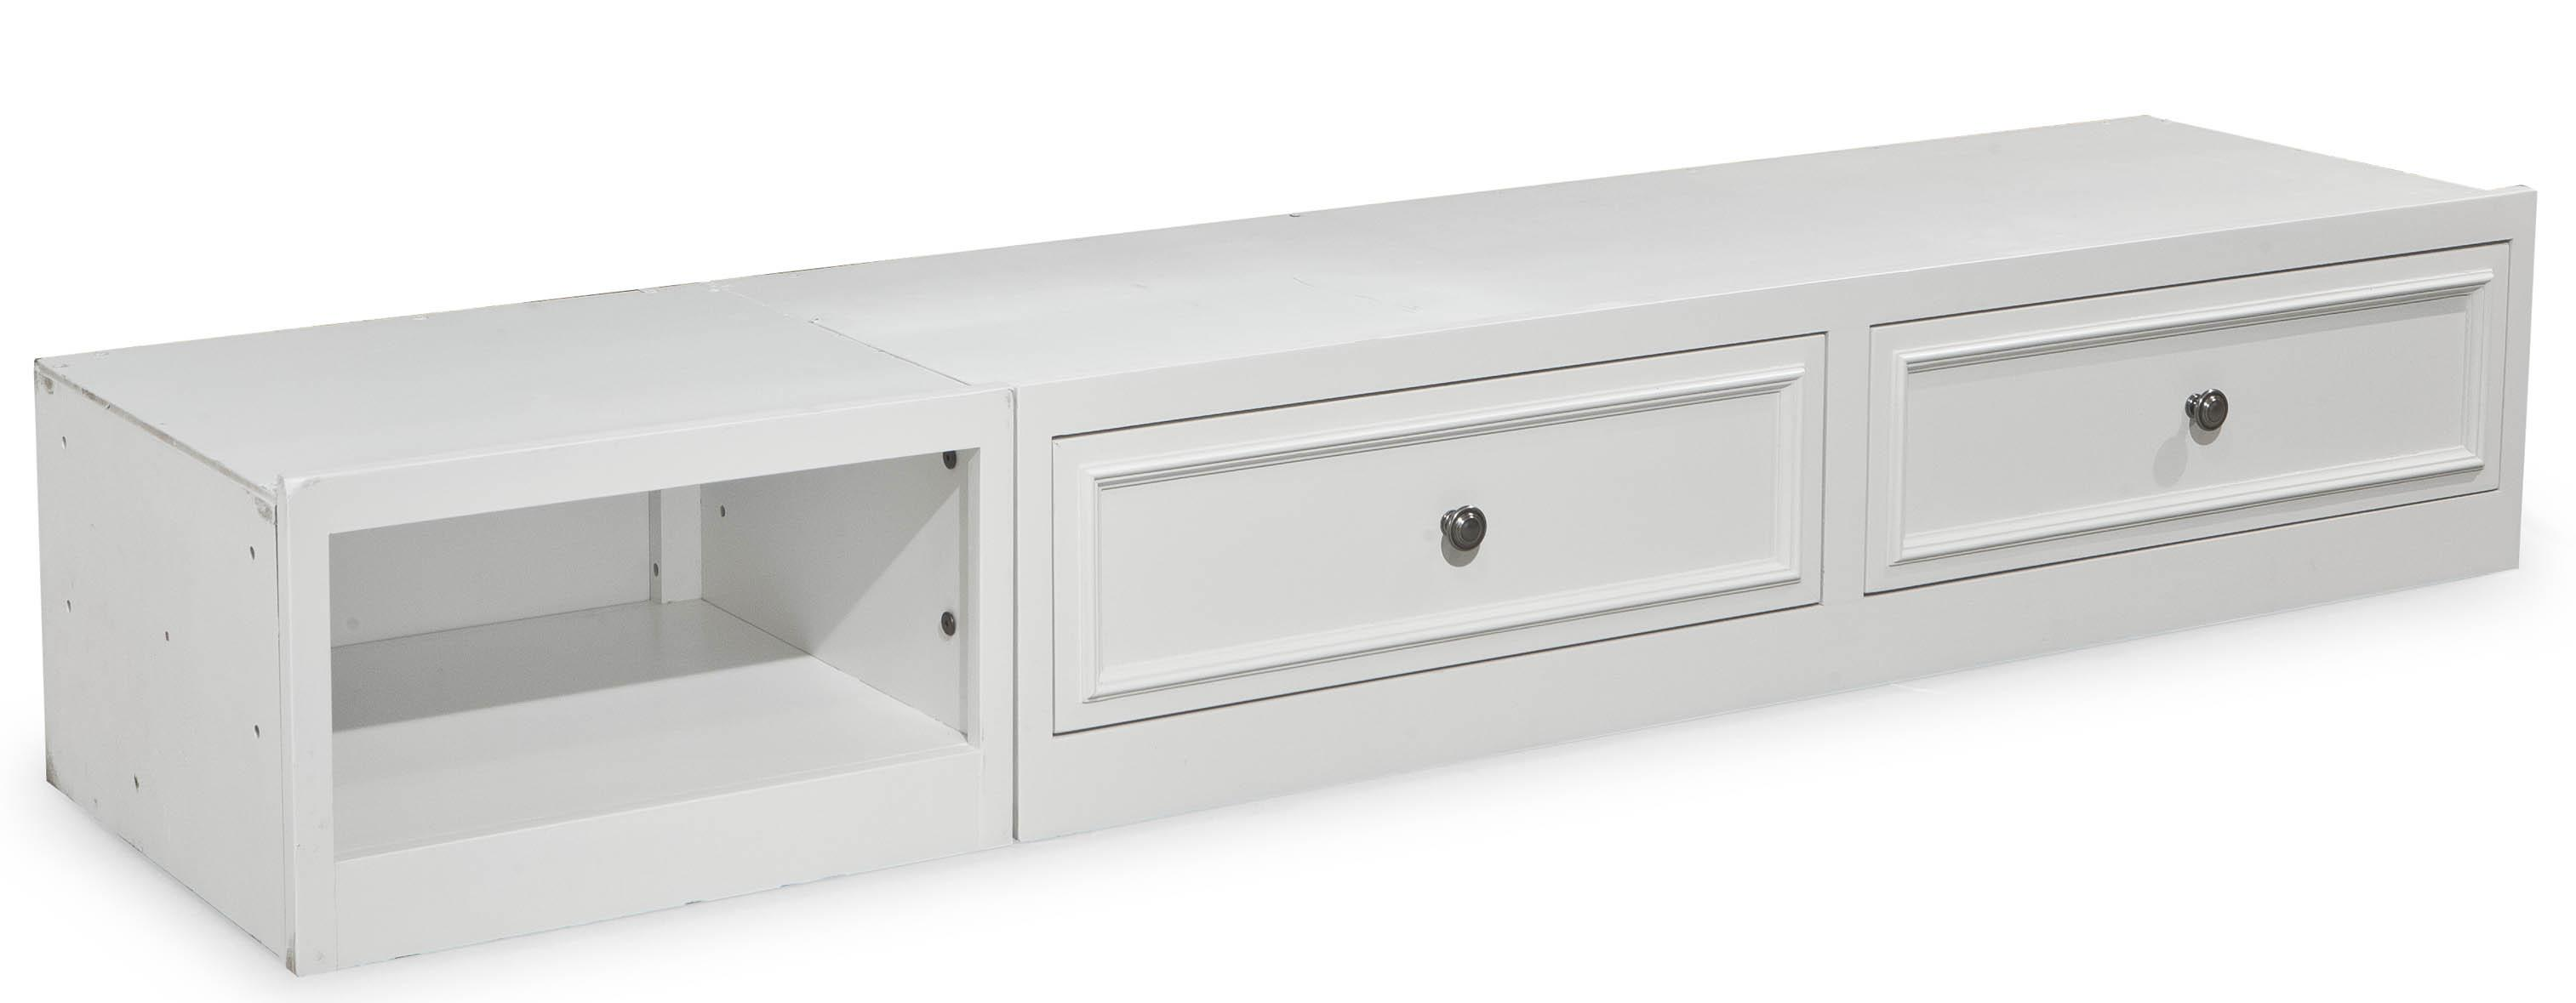 Legacy Classic Kids Madison Underbed Storage Unit - Item Number: 2830-9300